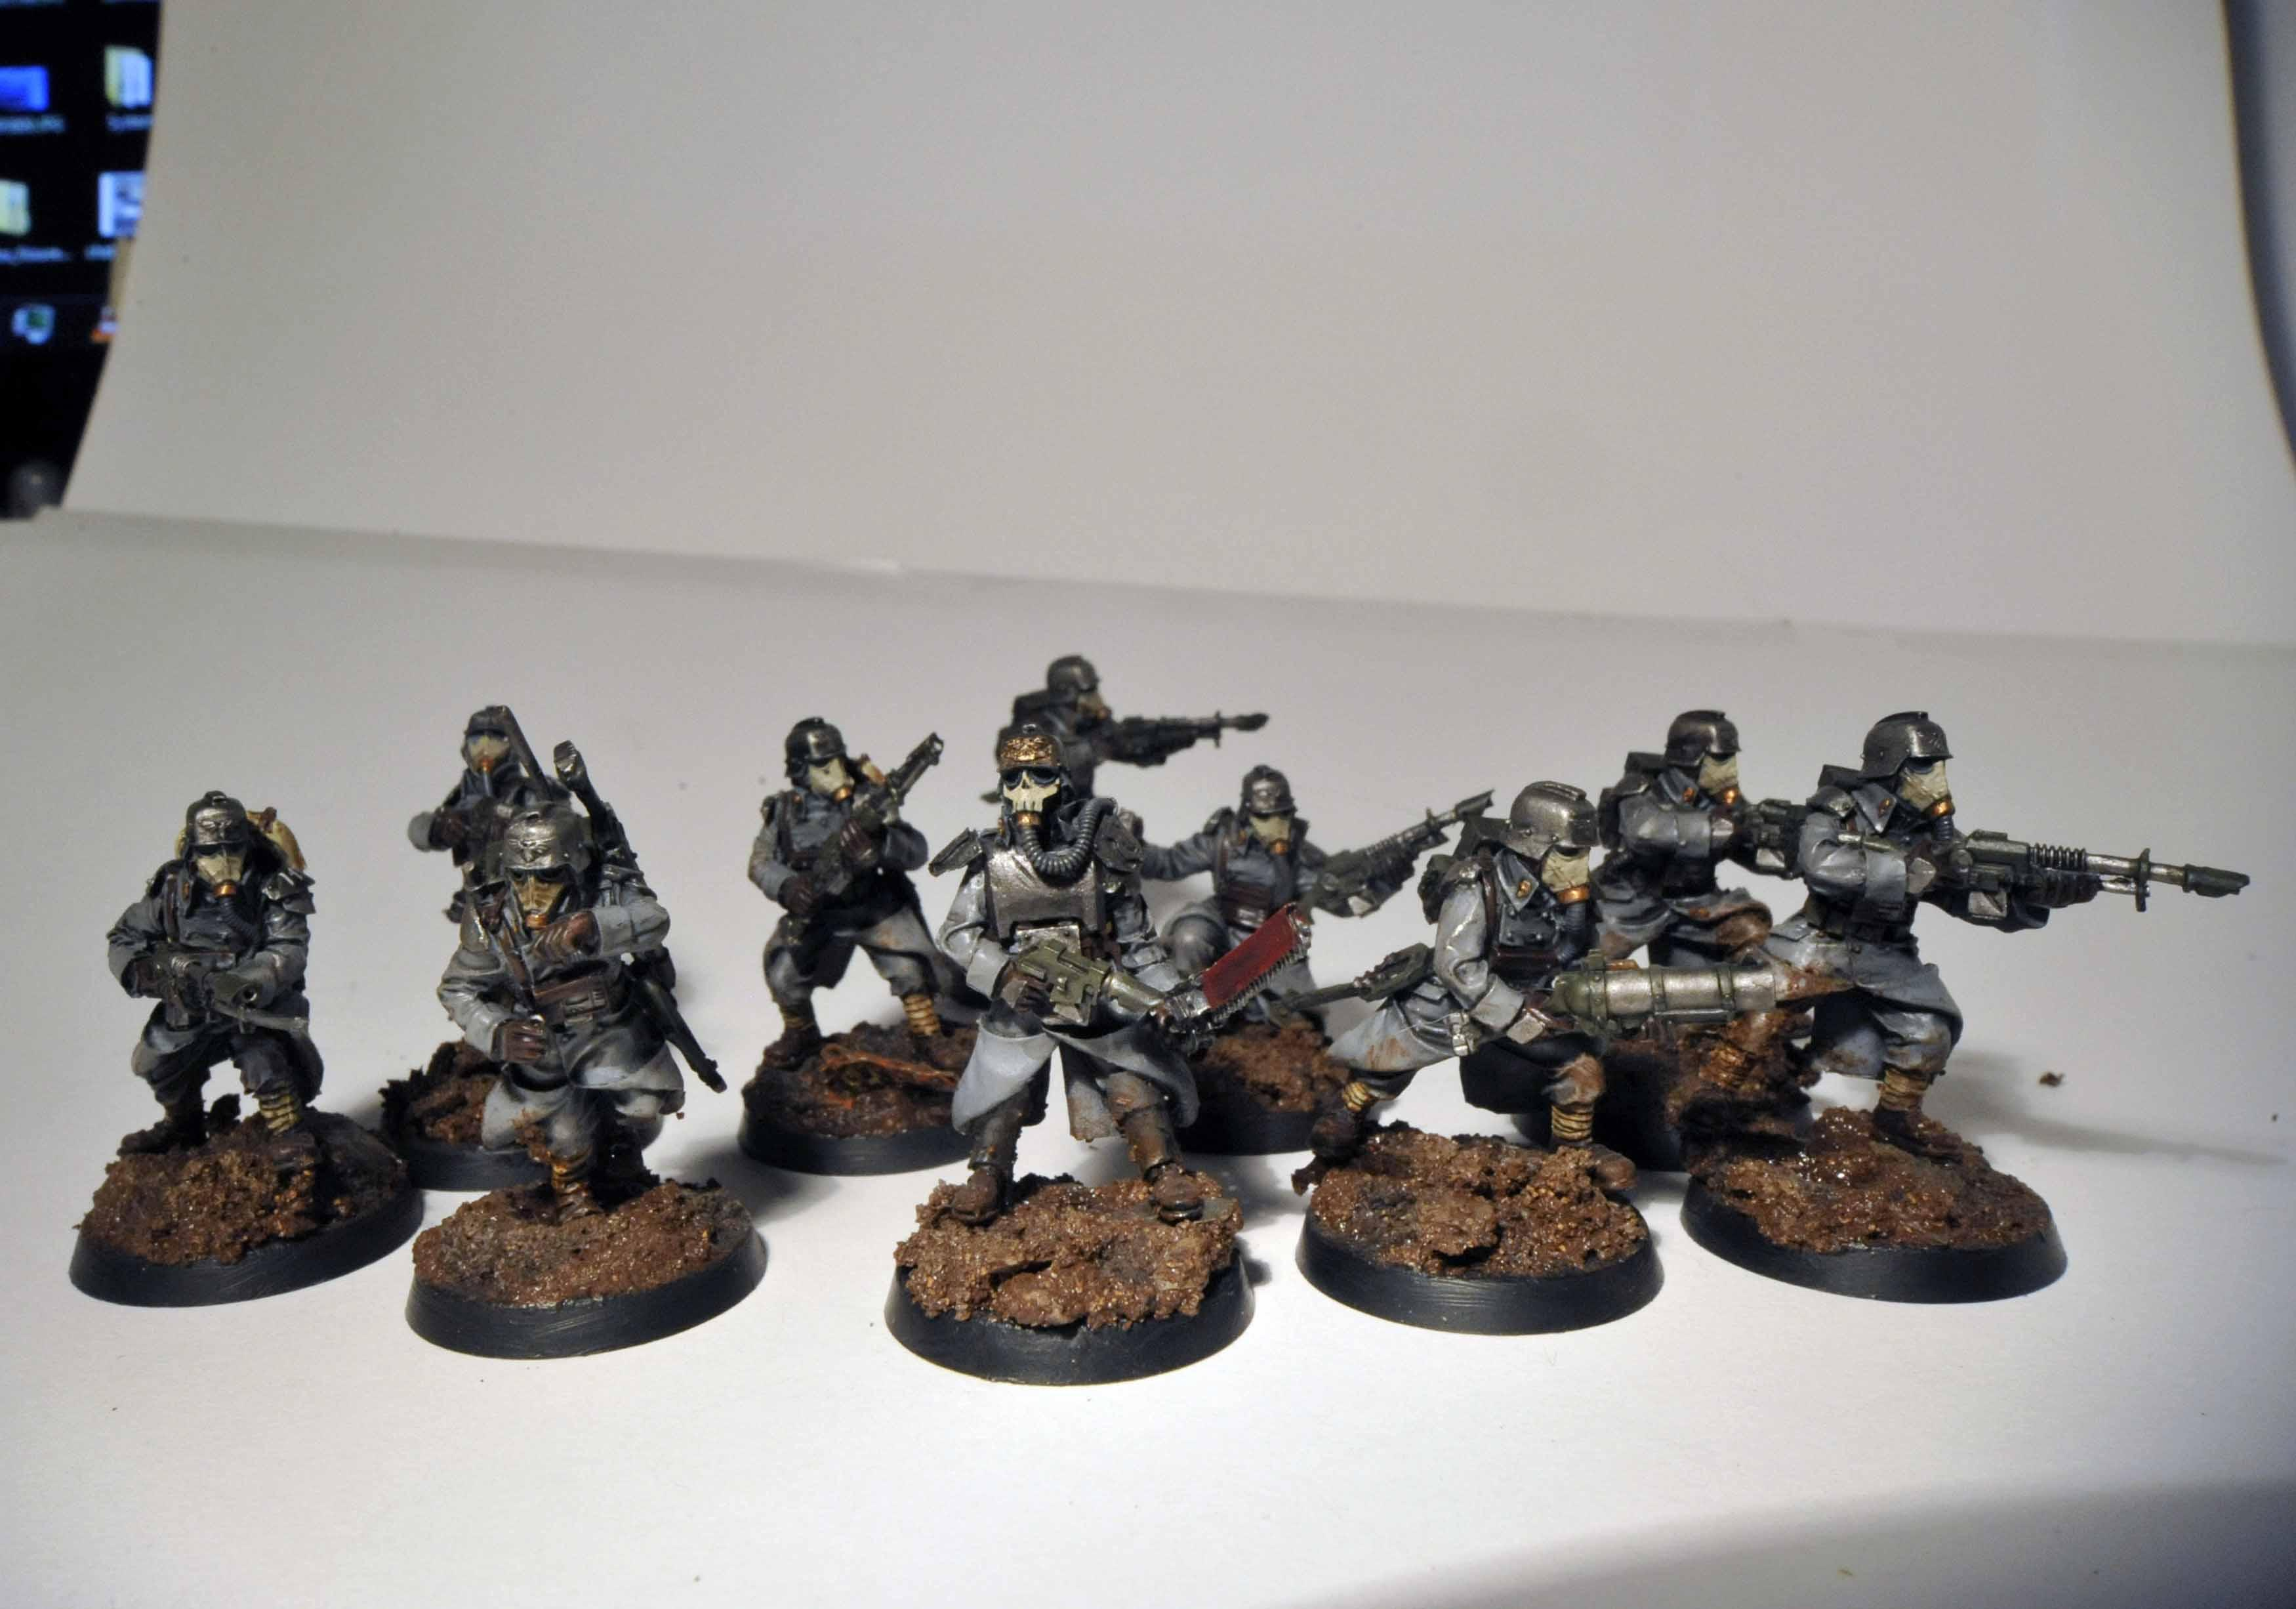 Death, Death Korps of Krieg, Forge, Forge World, Imperial, Infantry Squad, Korps, Kreigs, World